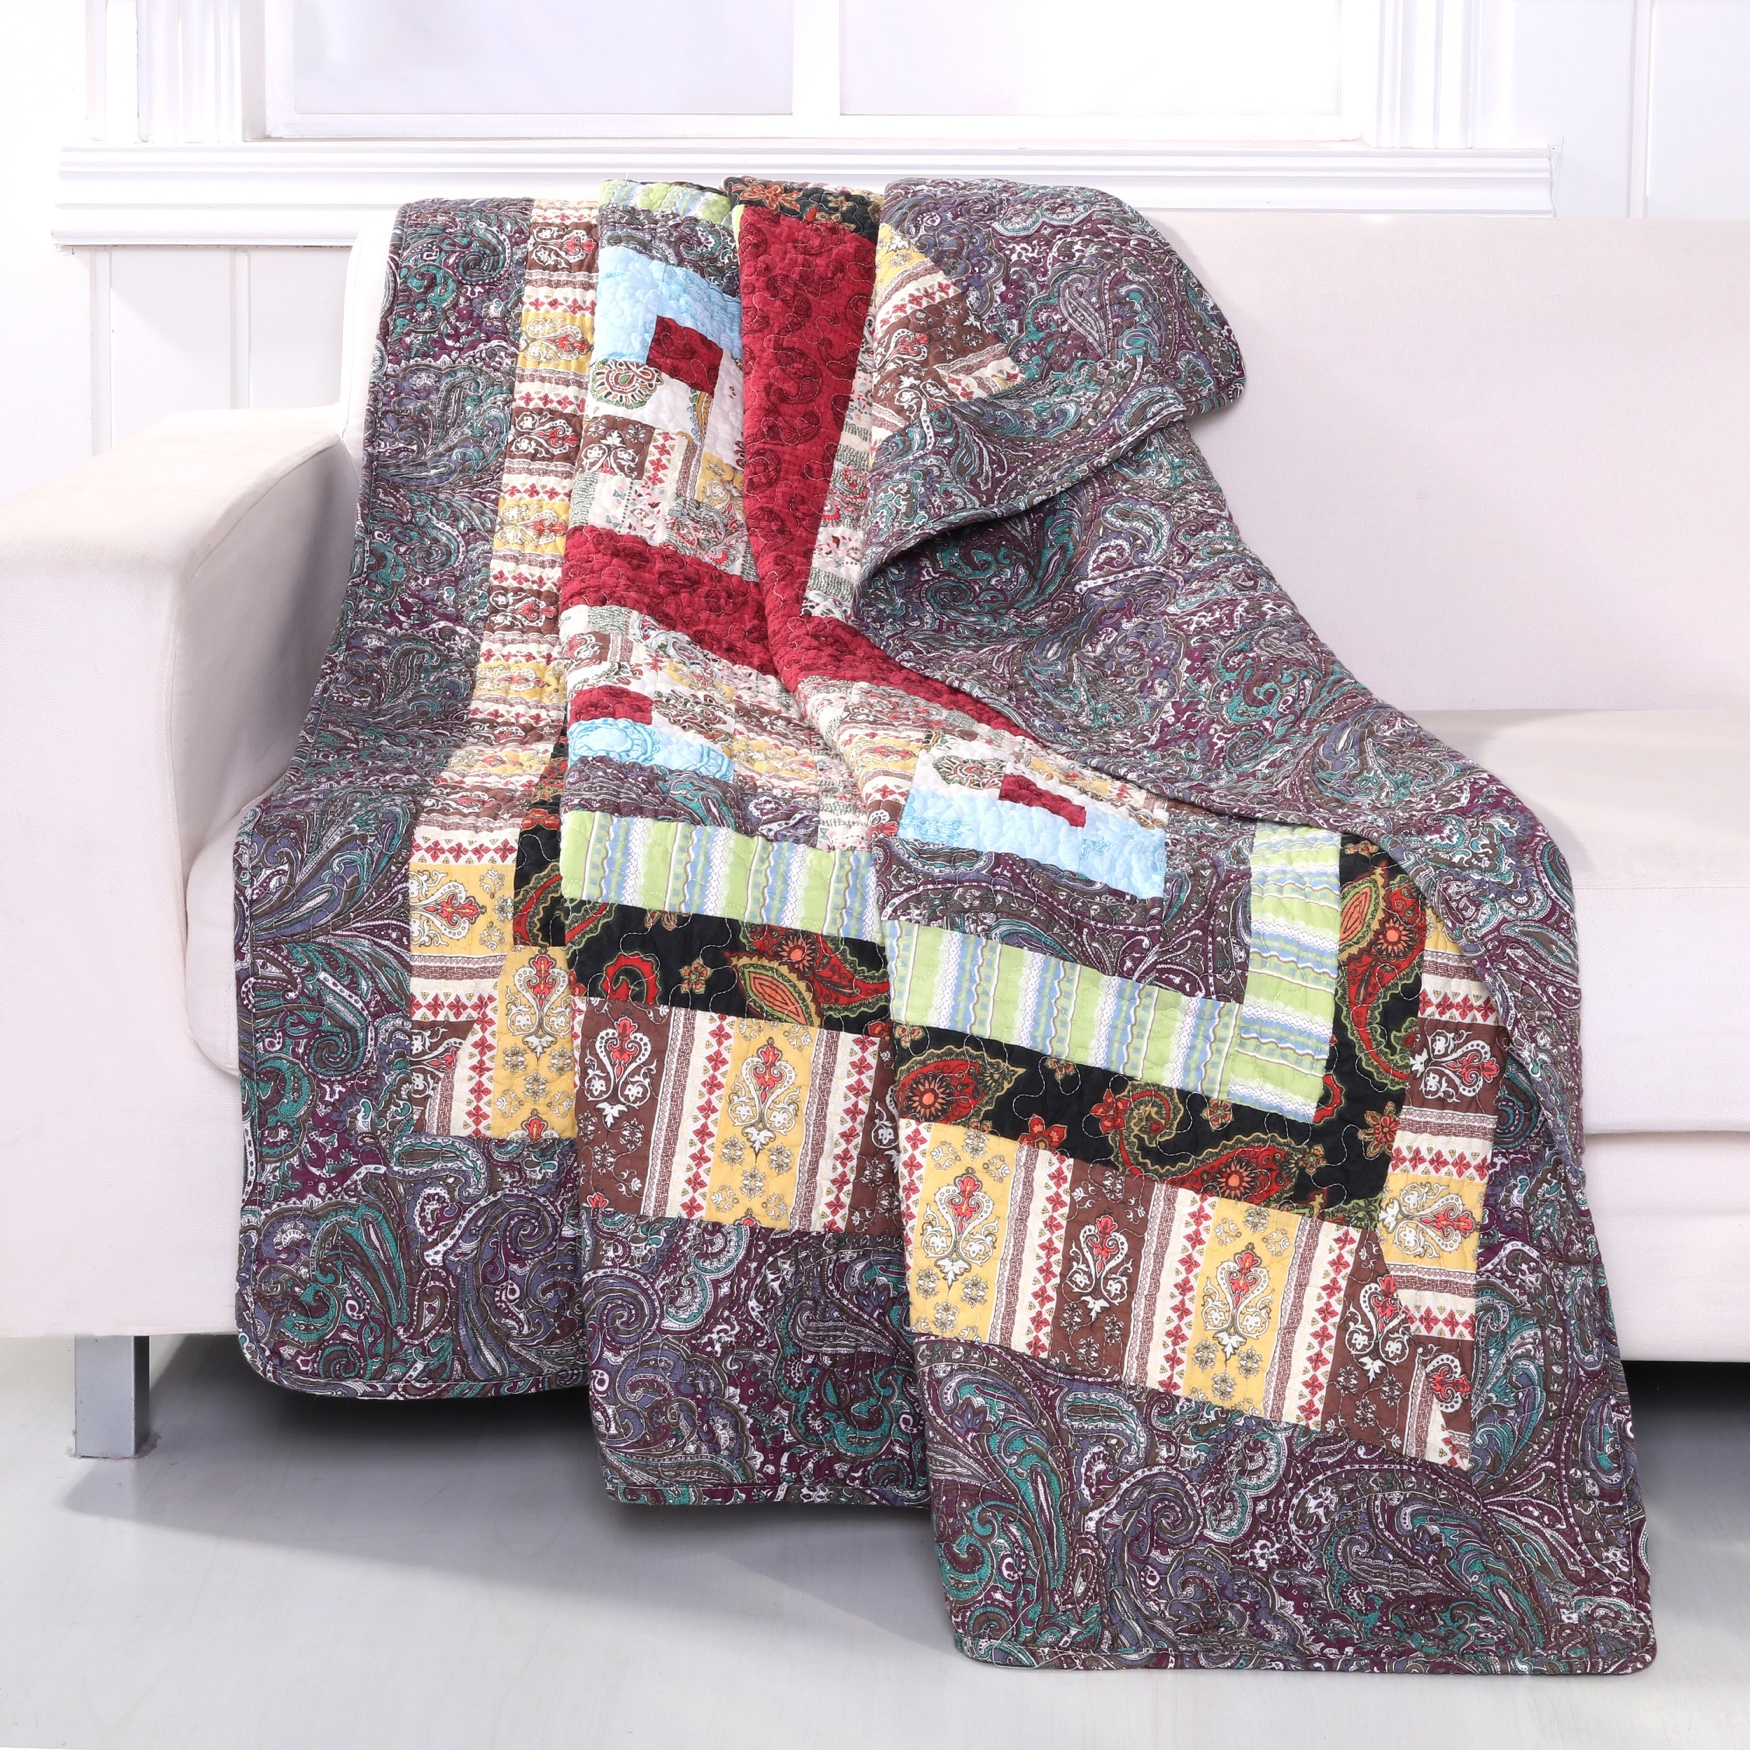 Greenland Home Fashions Colorado Lodge Quilted Patchwork Throw Blanket, MULTI